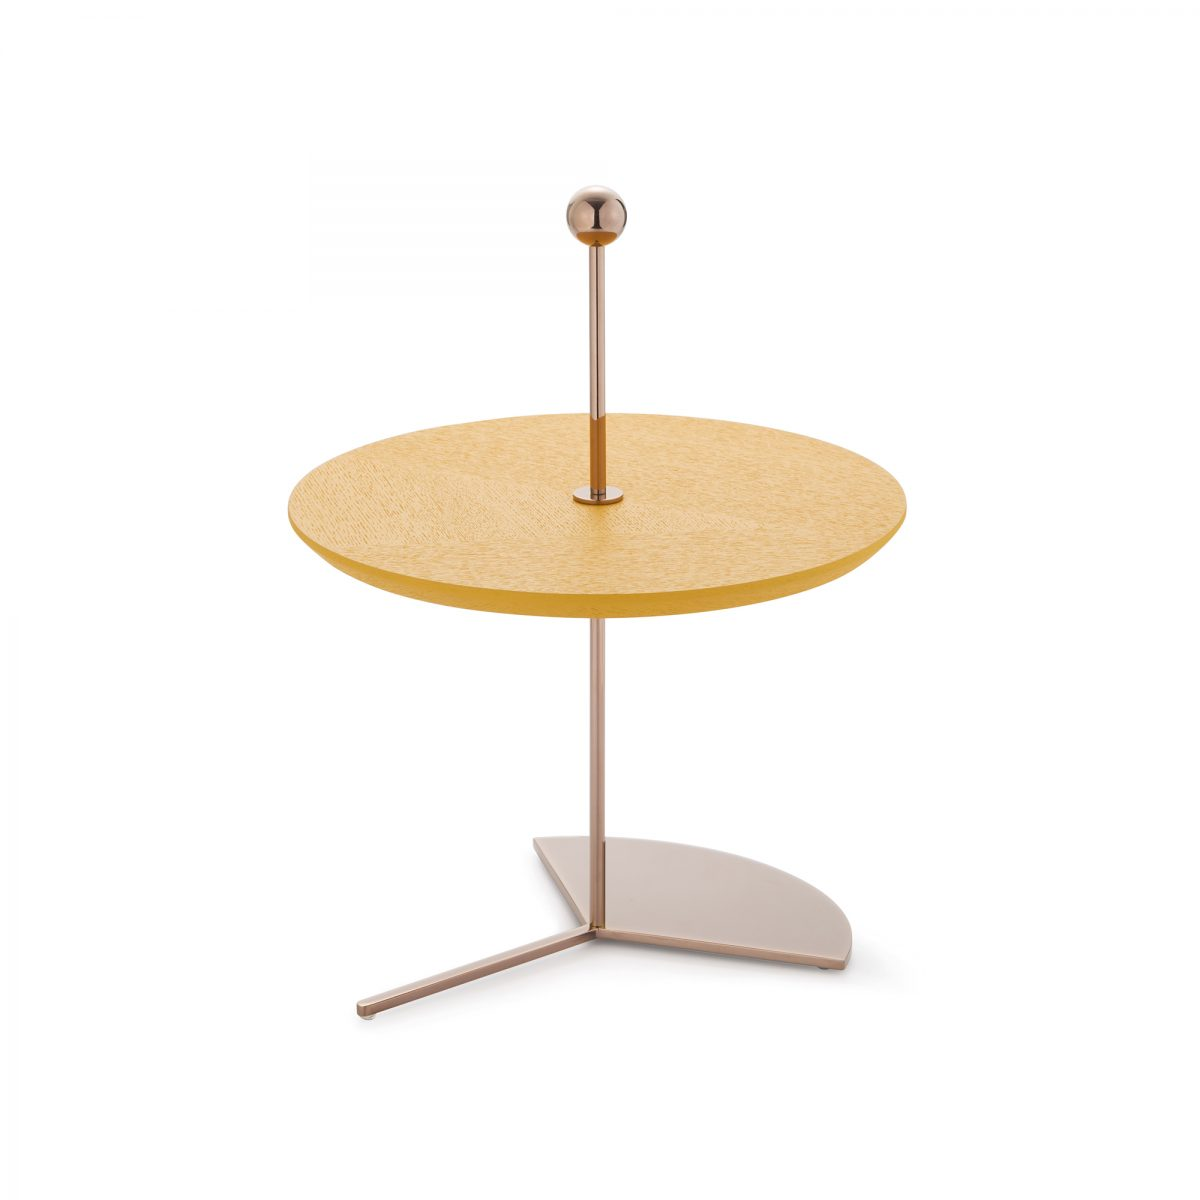 1-off_the_moon_cake_stand_02_accessories_trays&tableware_yellow